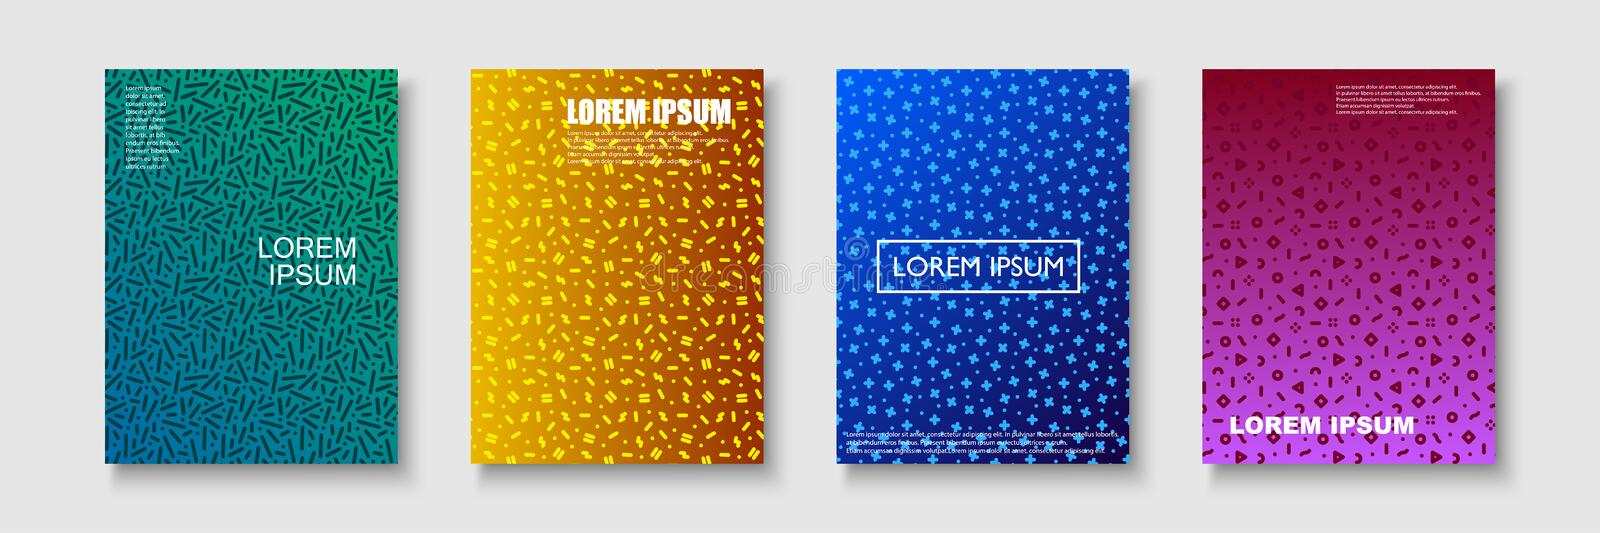 Set of trendy colorful covers - retro mempis style 80-90s. Modern backgrounds brochures, posters, banners, templates stock illustration